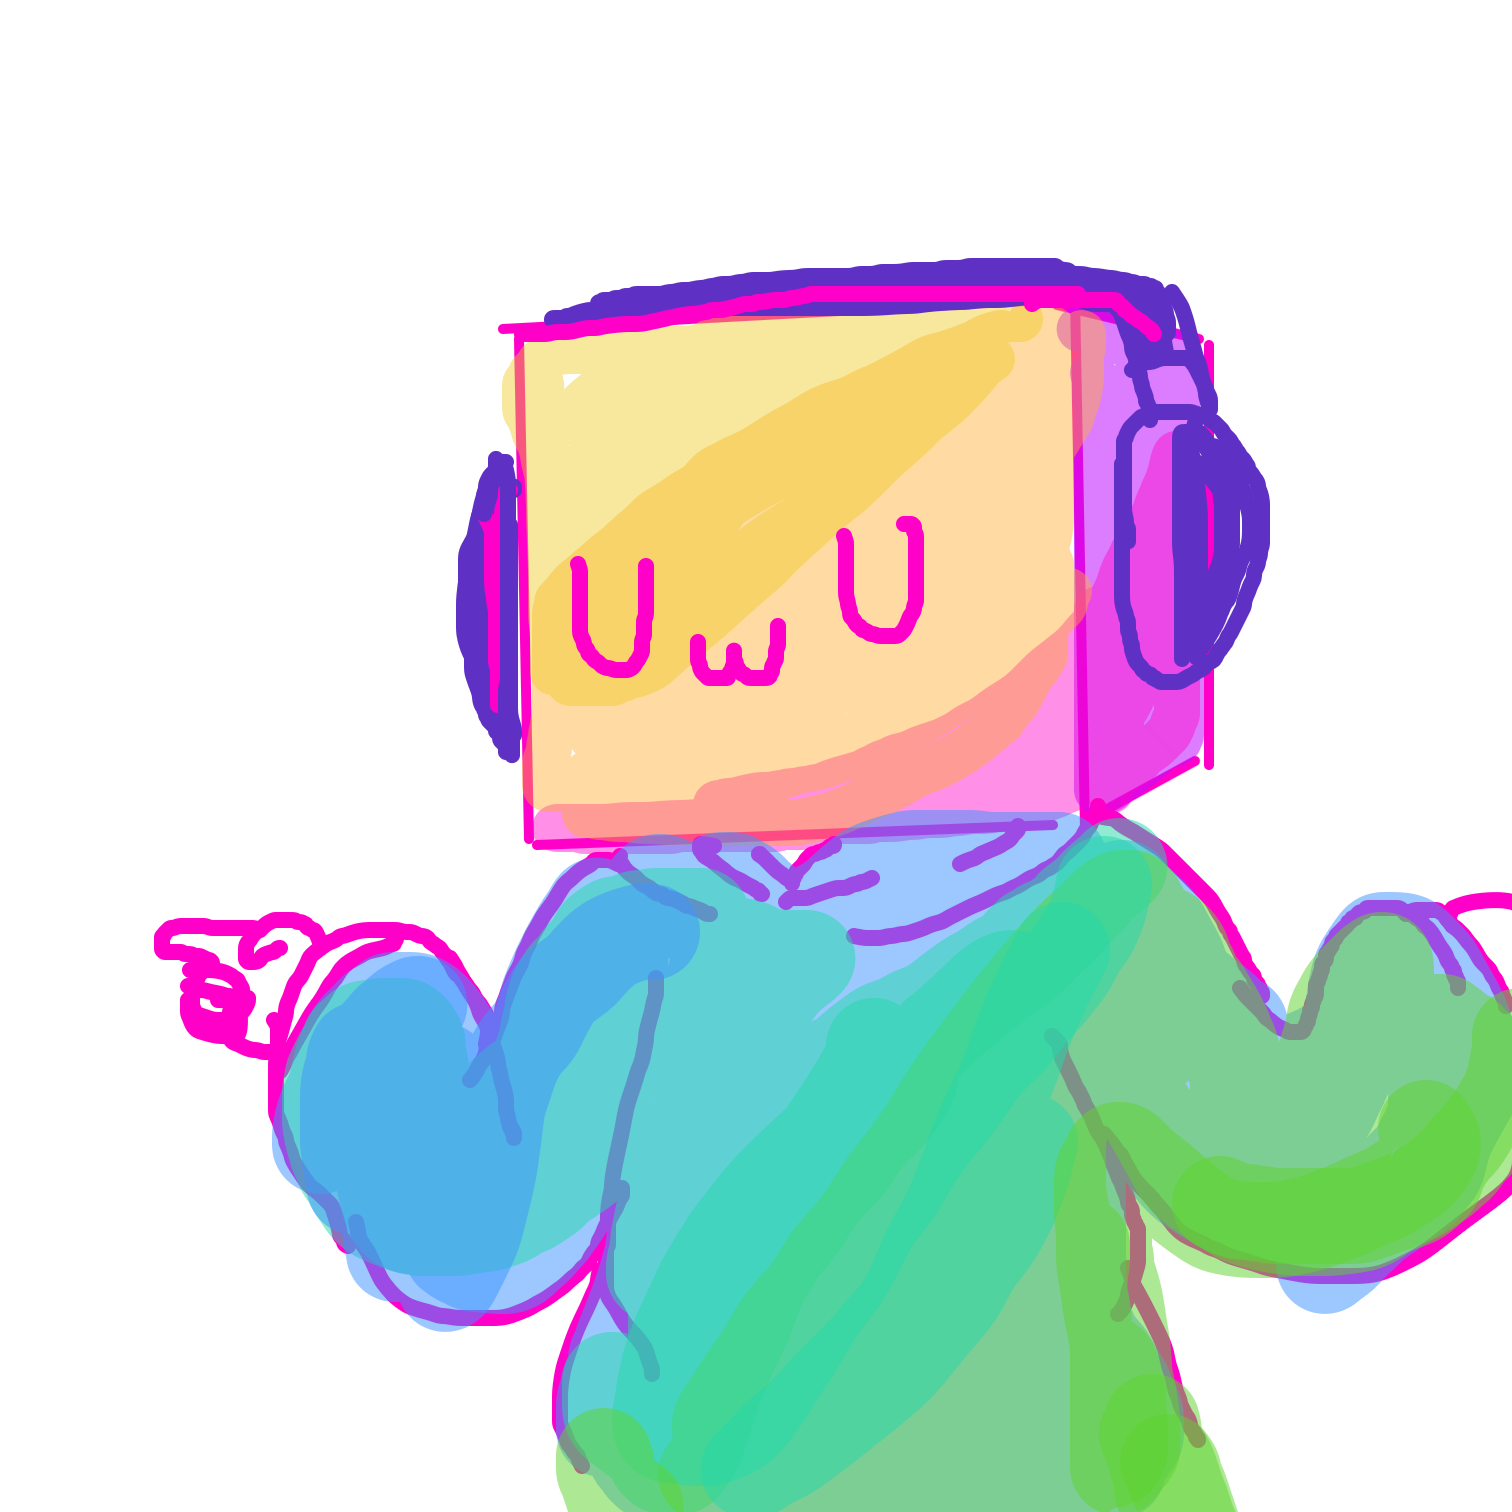 Drawing in The UwU cube by Juleefish